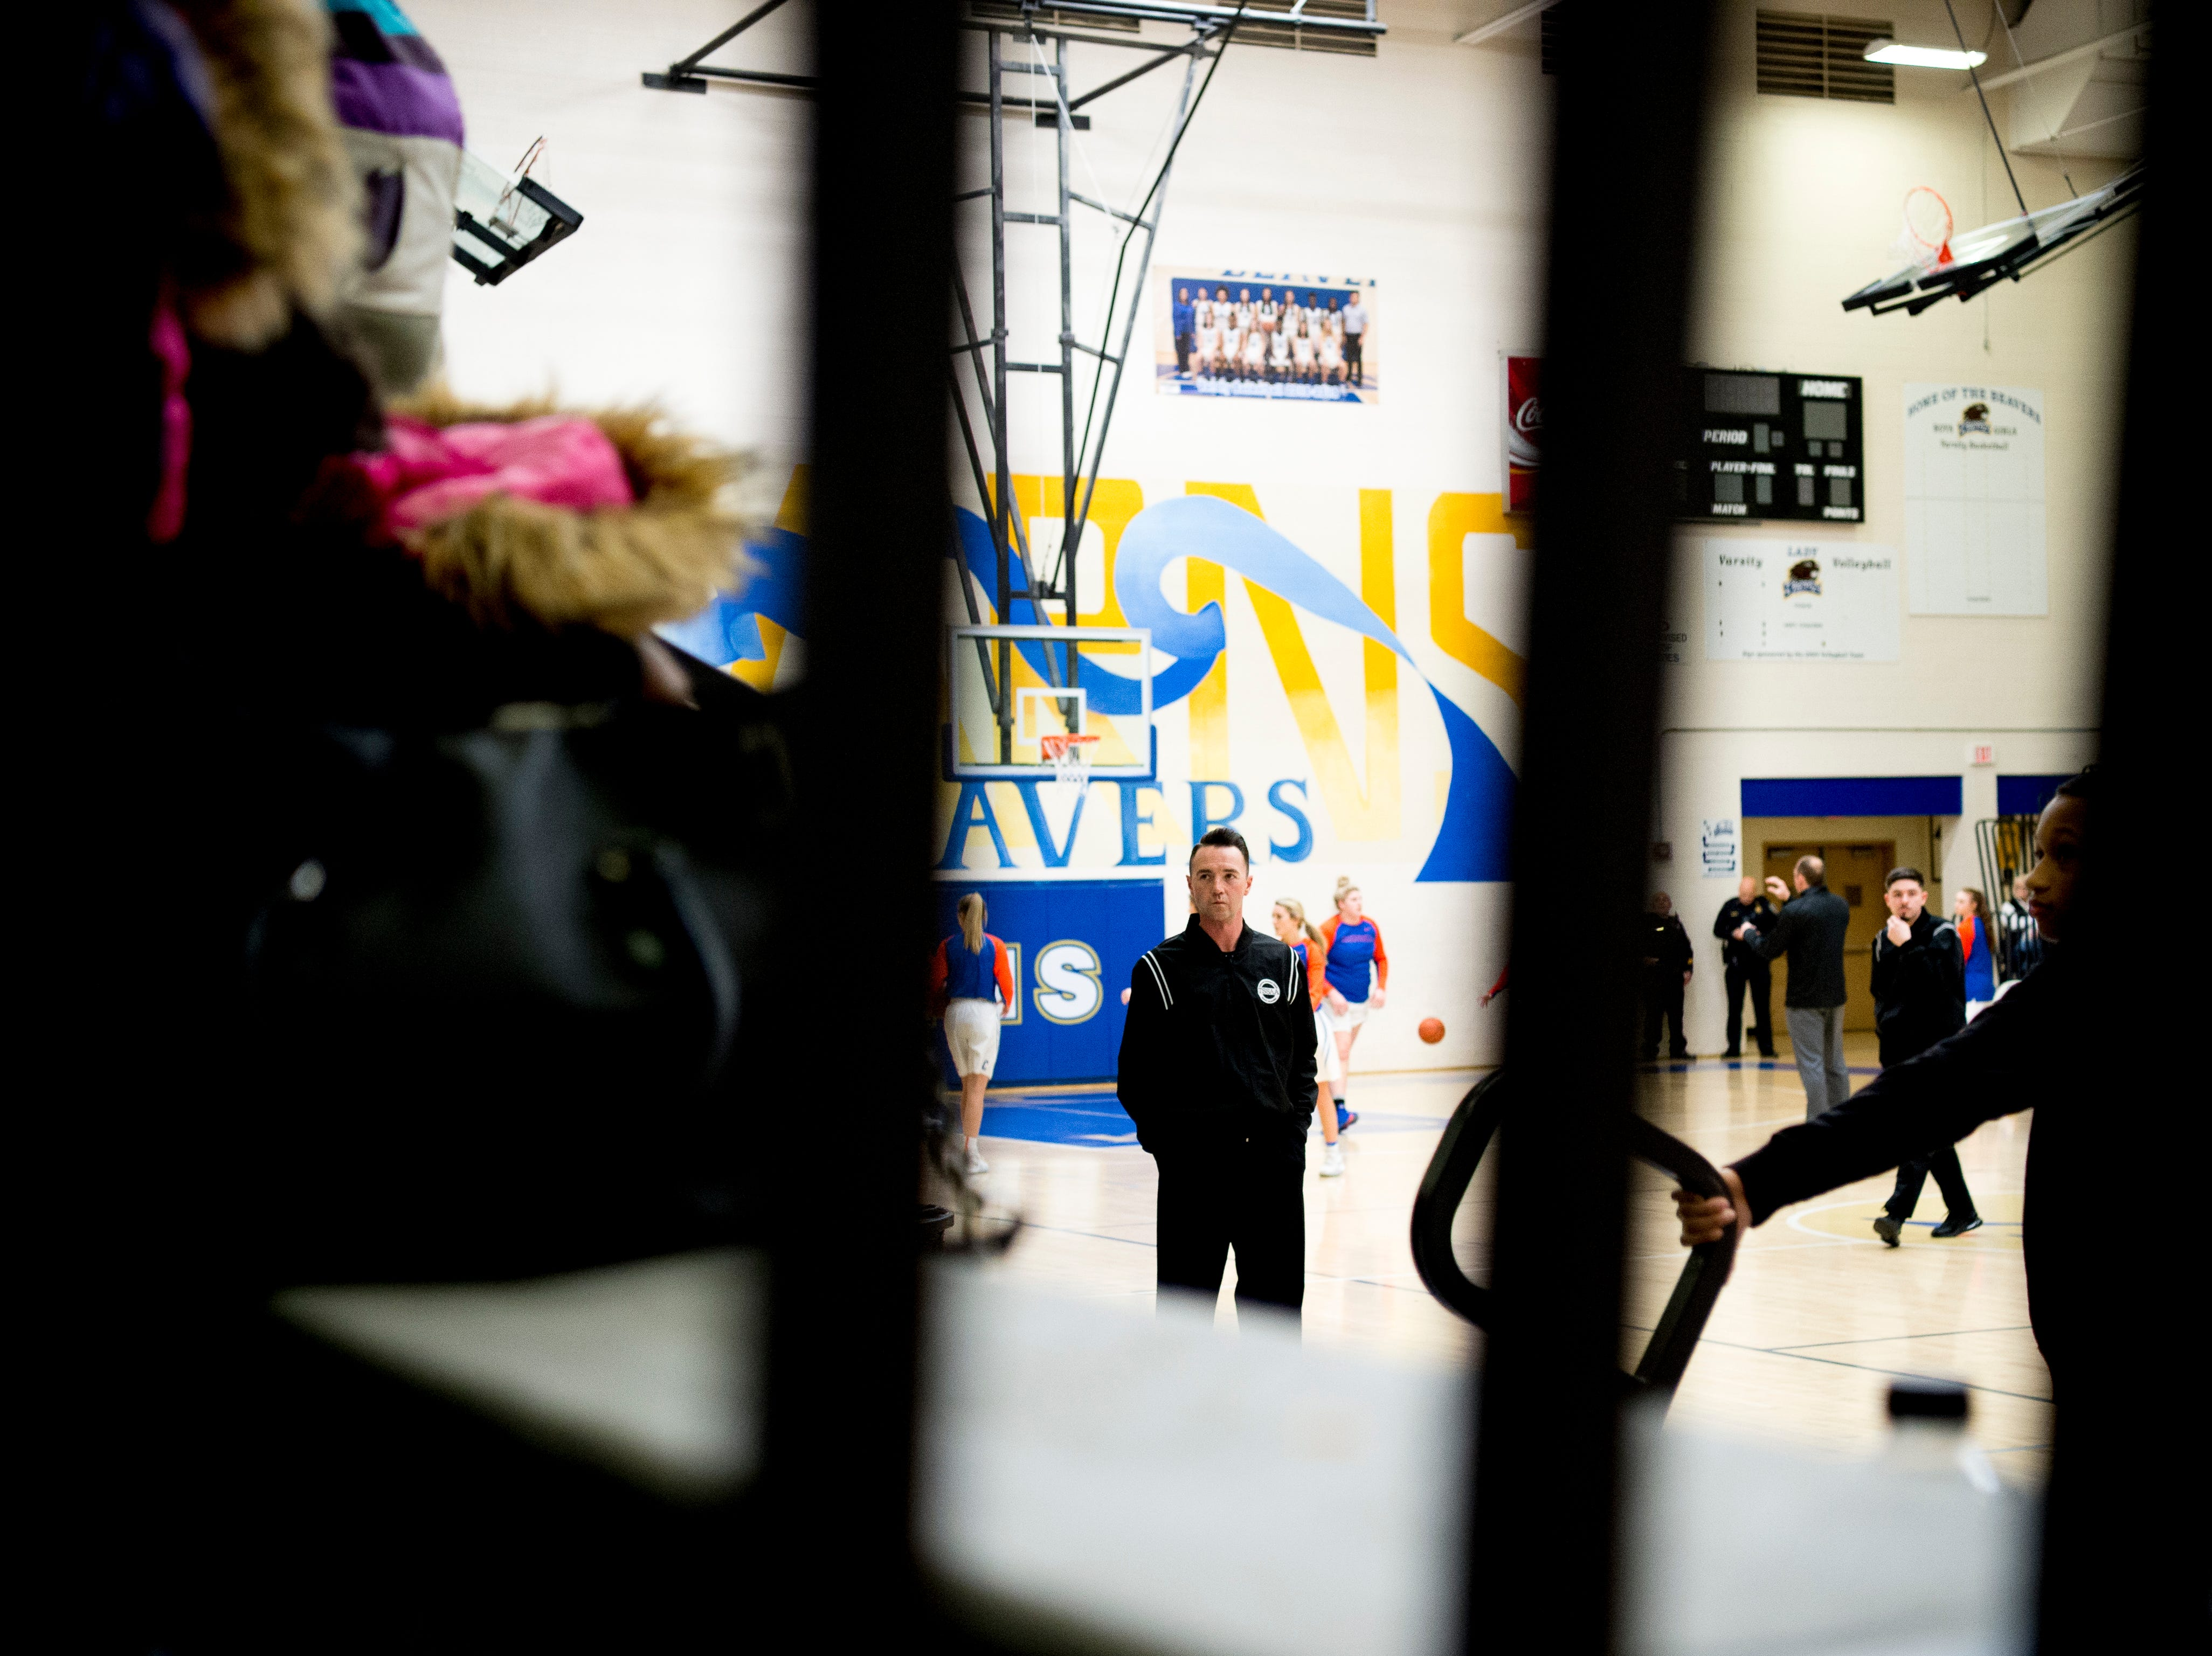 A referee waits for the start of the game during a semifinal game at Karns High School in Knoxville, Tennessee on Saturday, February 16, 2019.